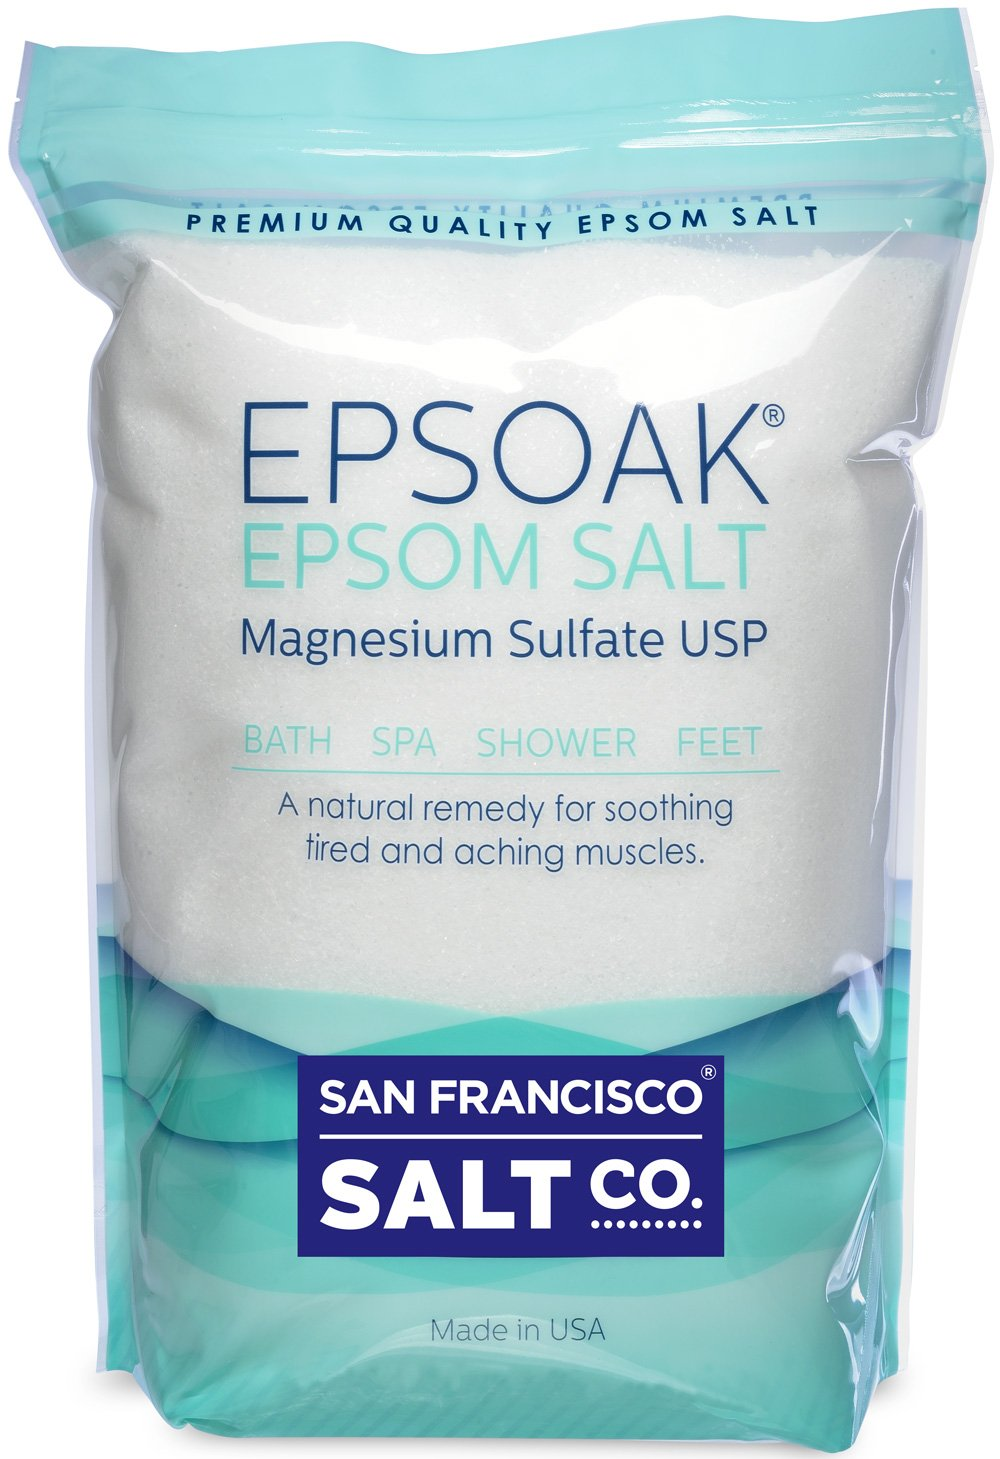 Epsoak Epsom Salt 2 Lbs - 100% Pure Magnesium Sulfate, Made in USA